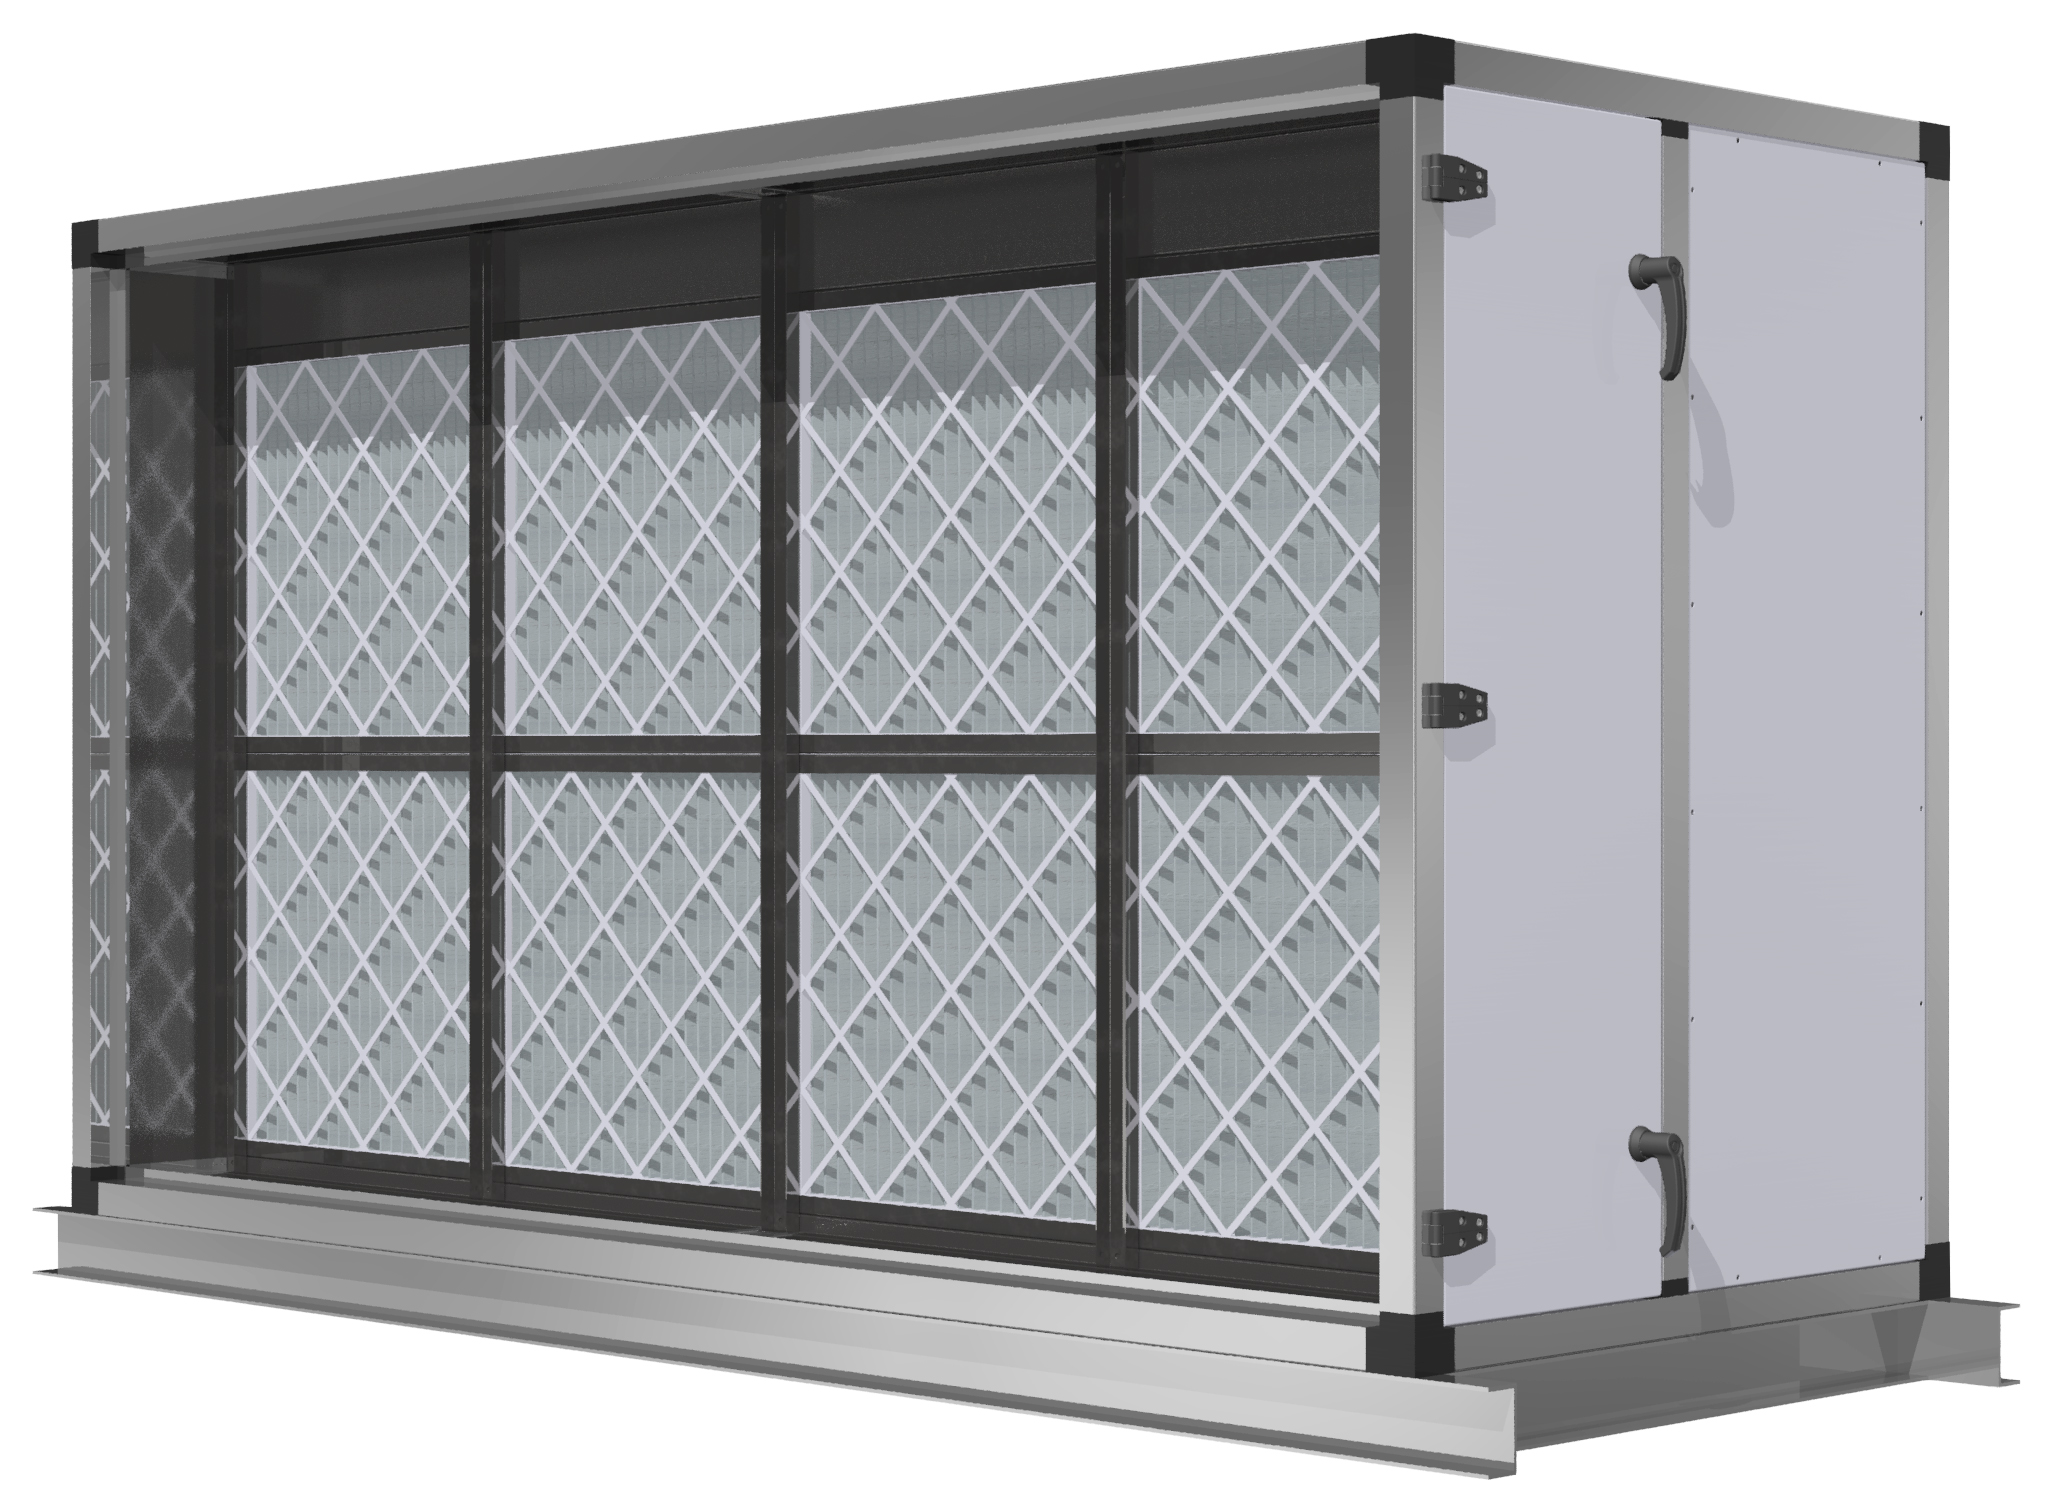 Air Filtration System - Filtration section 1